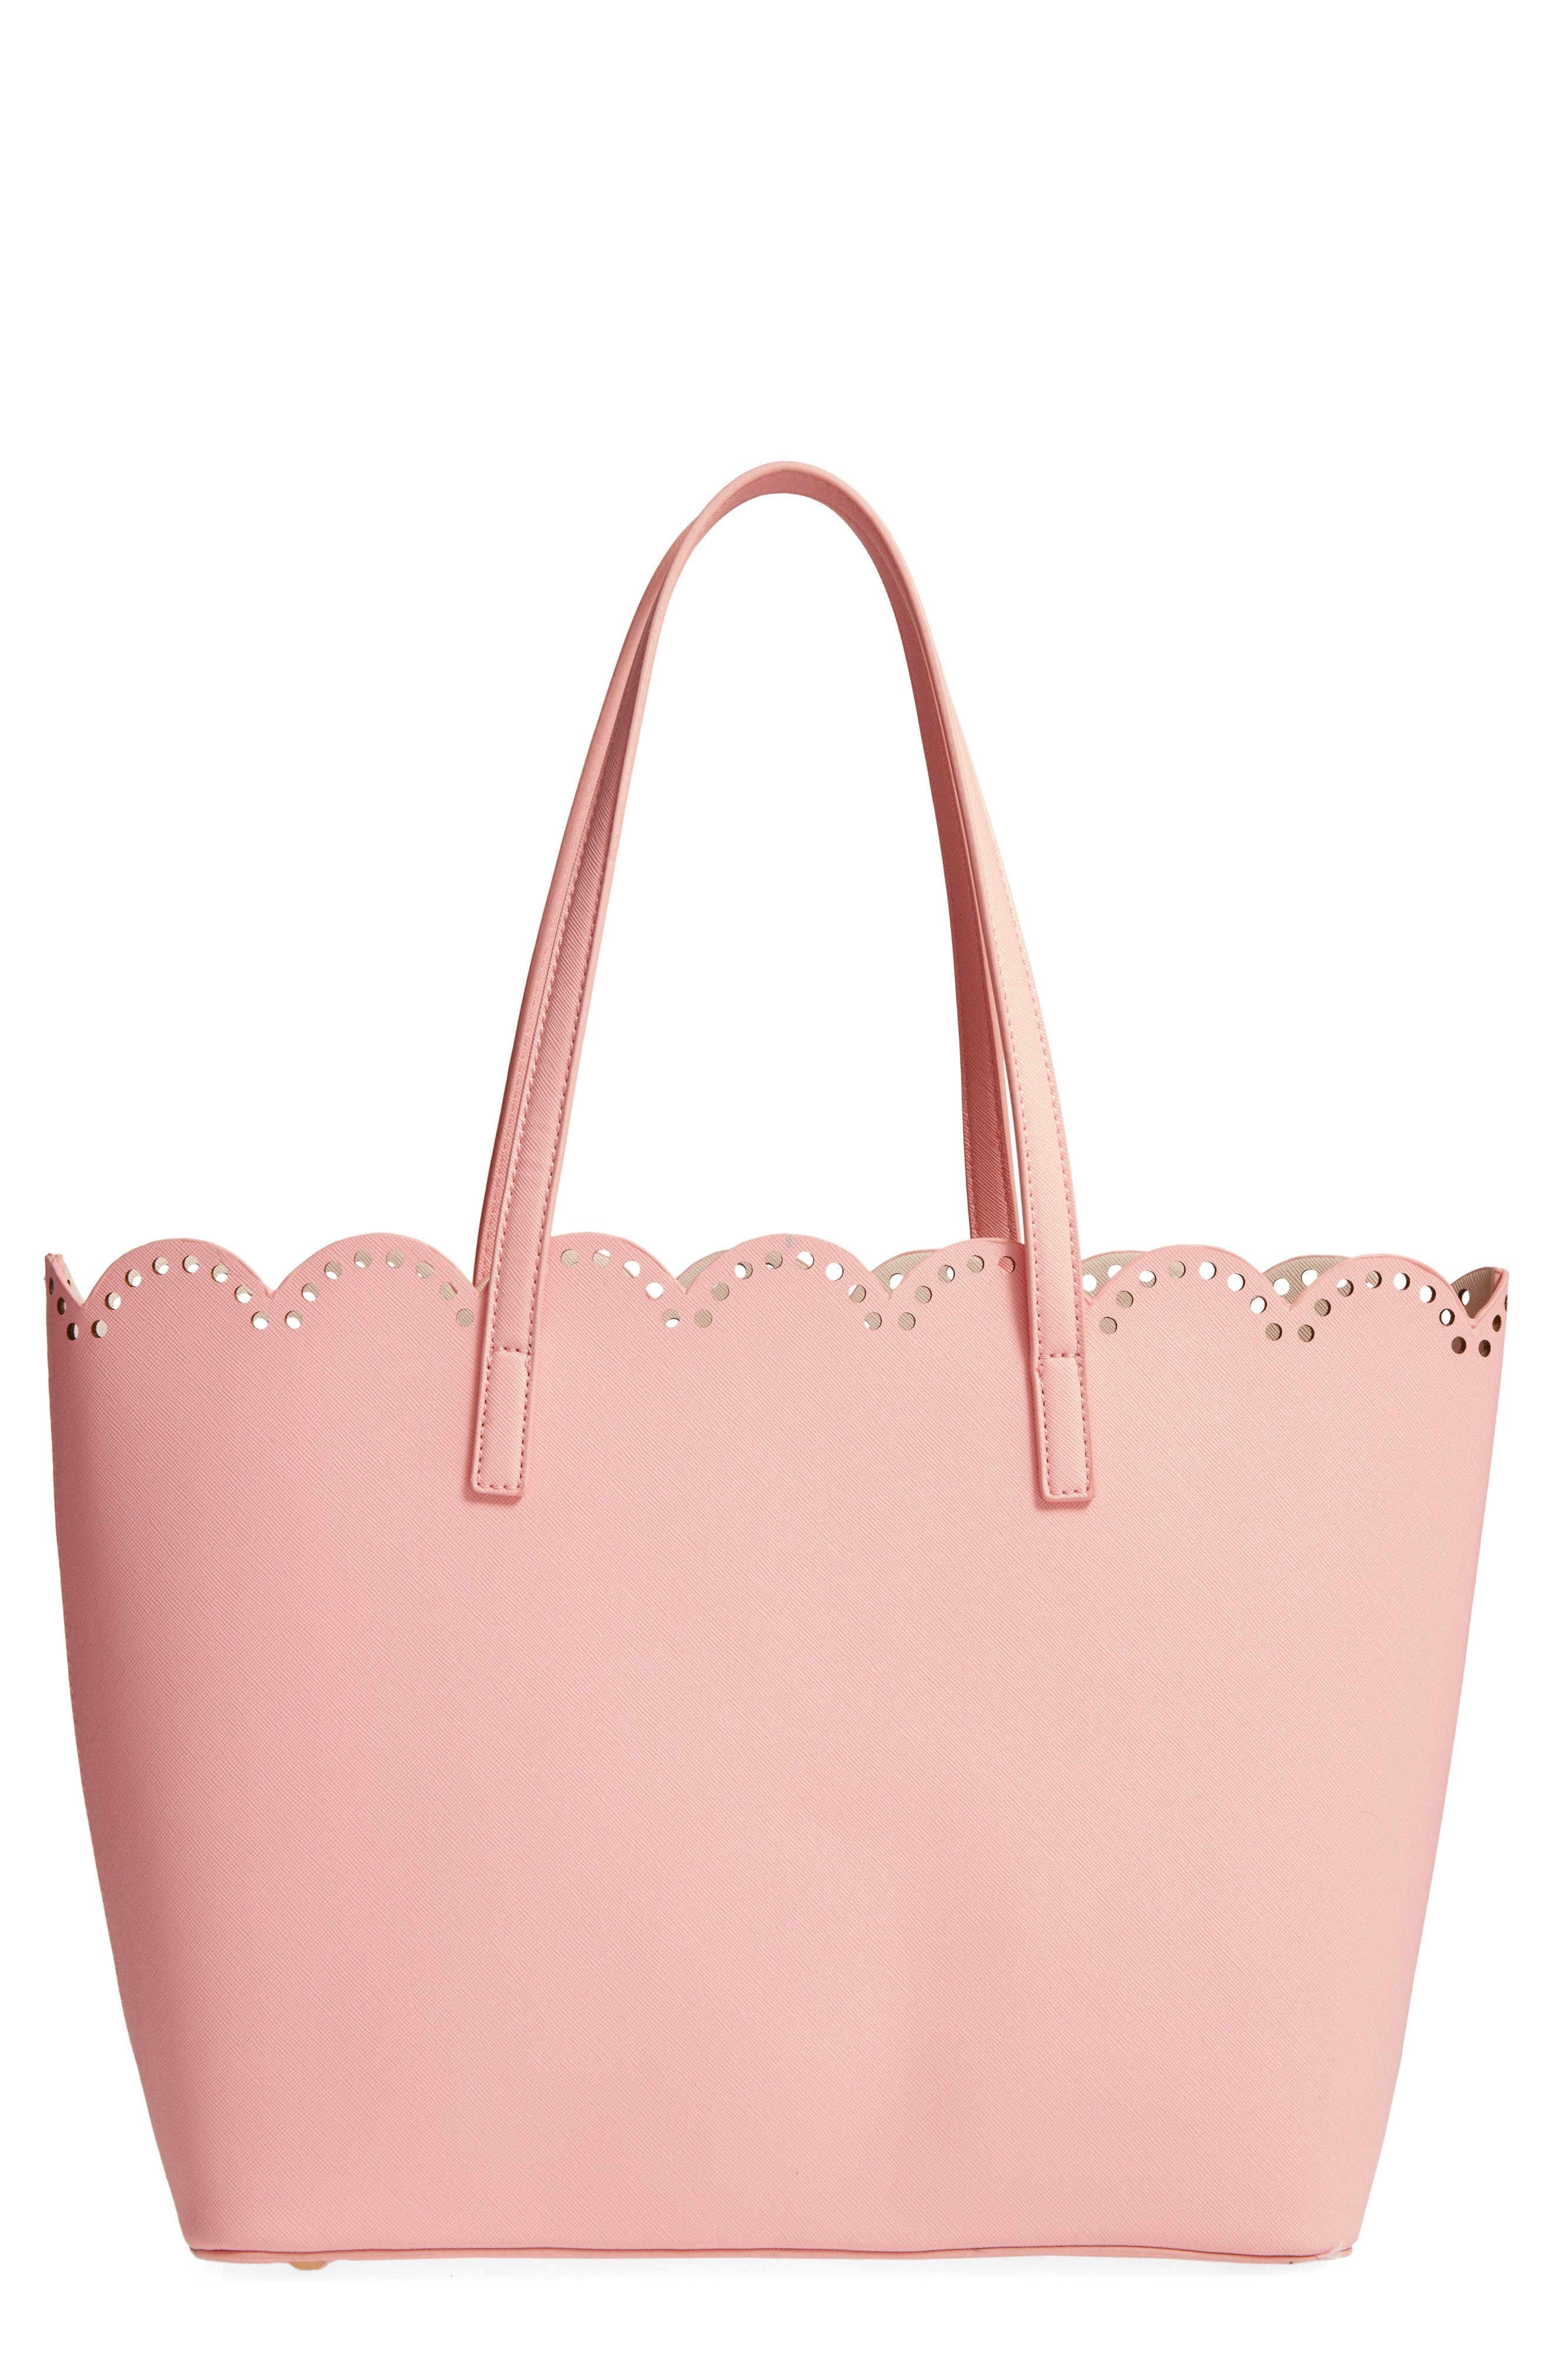 Alternate Image 1 Selected - BP. Scalloped Faux Leather Tote